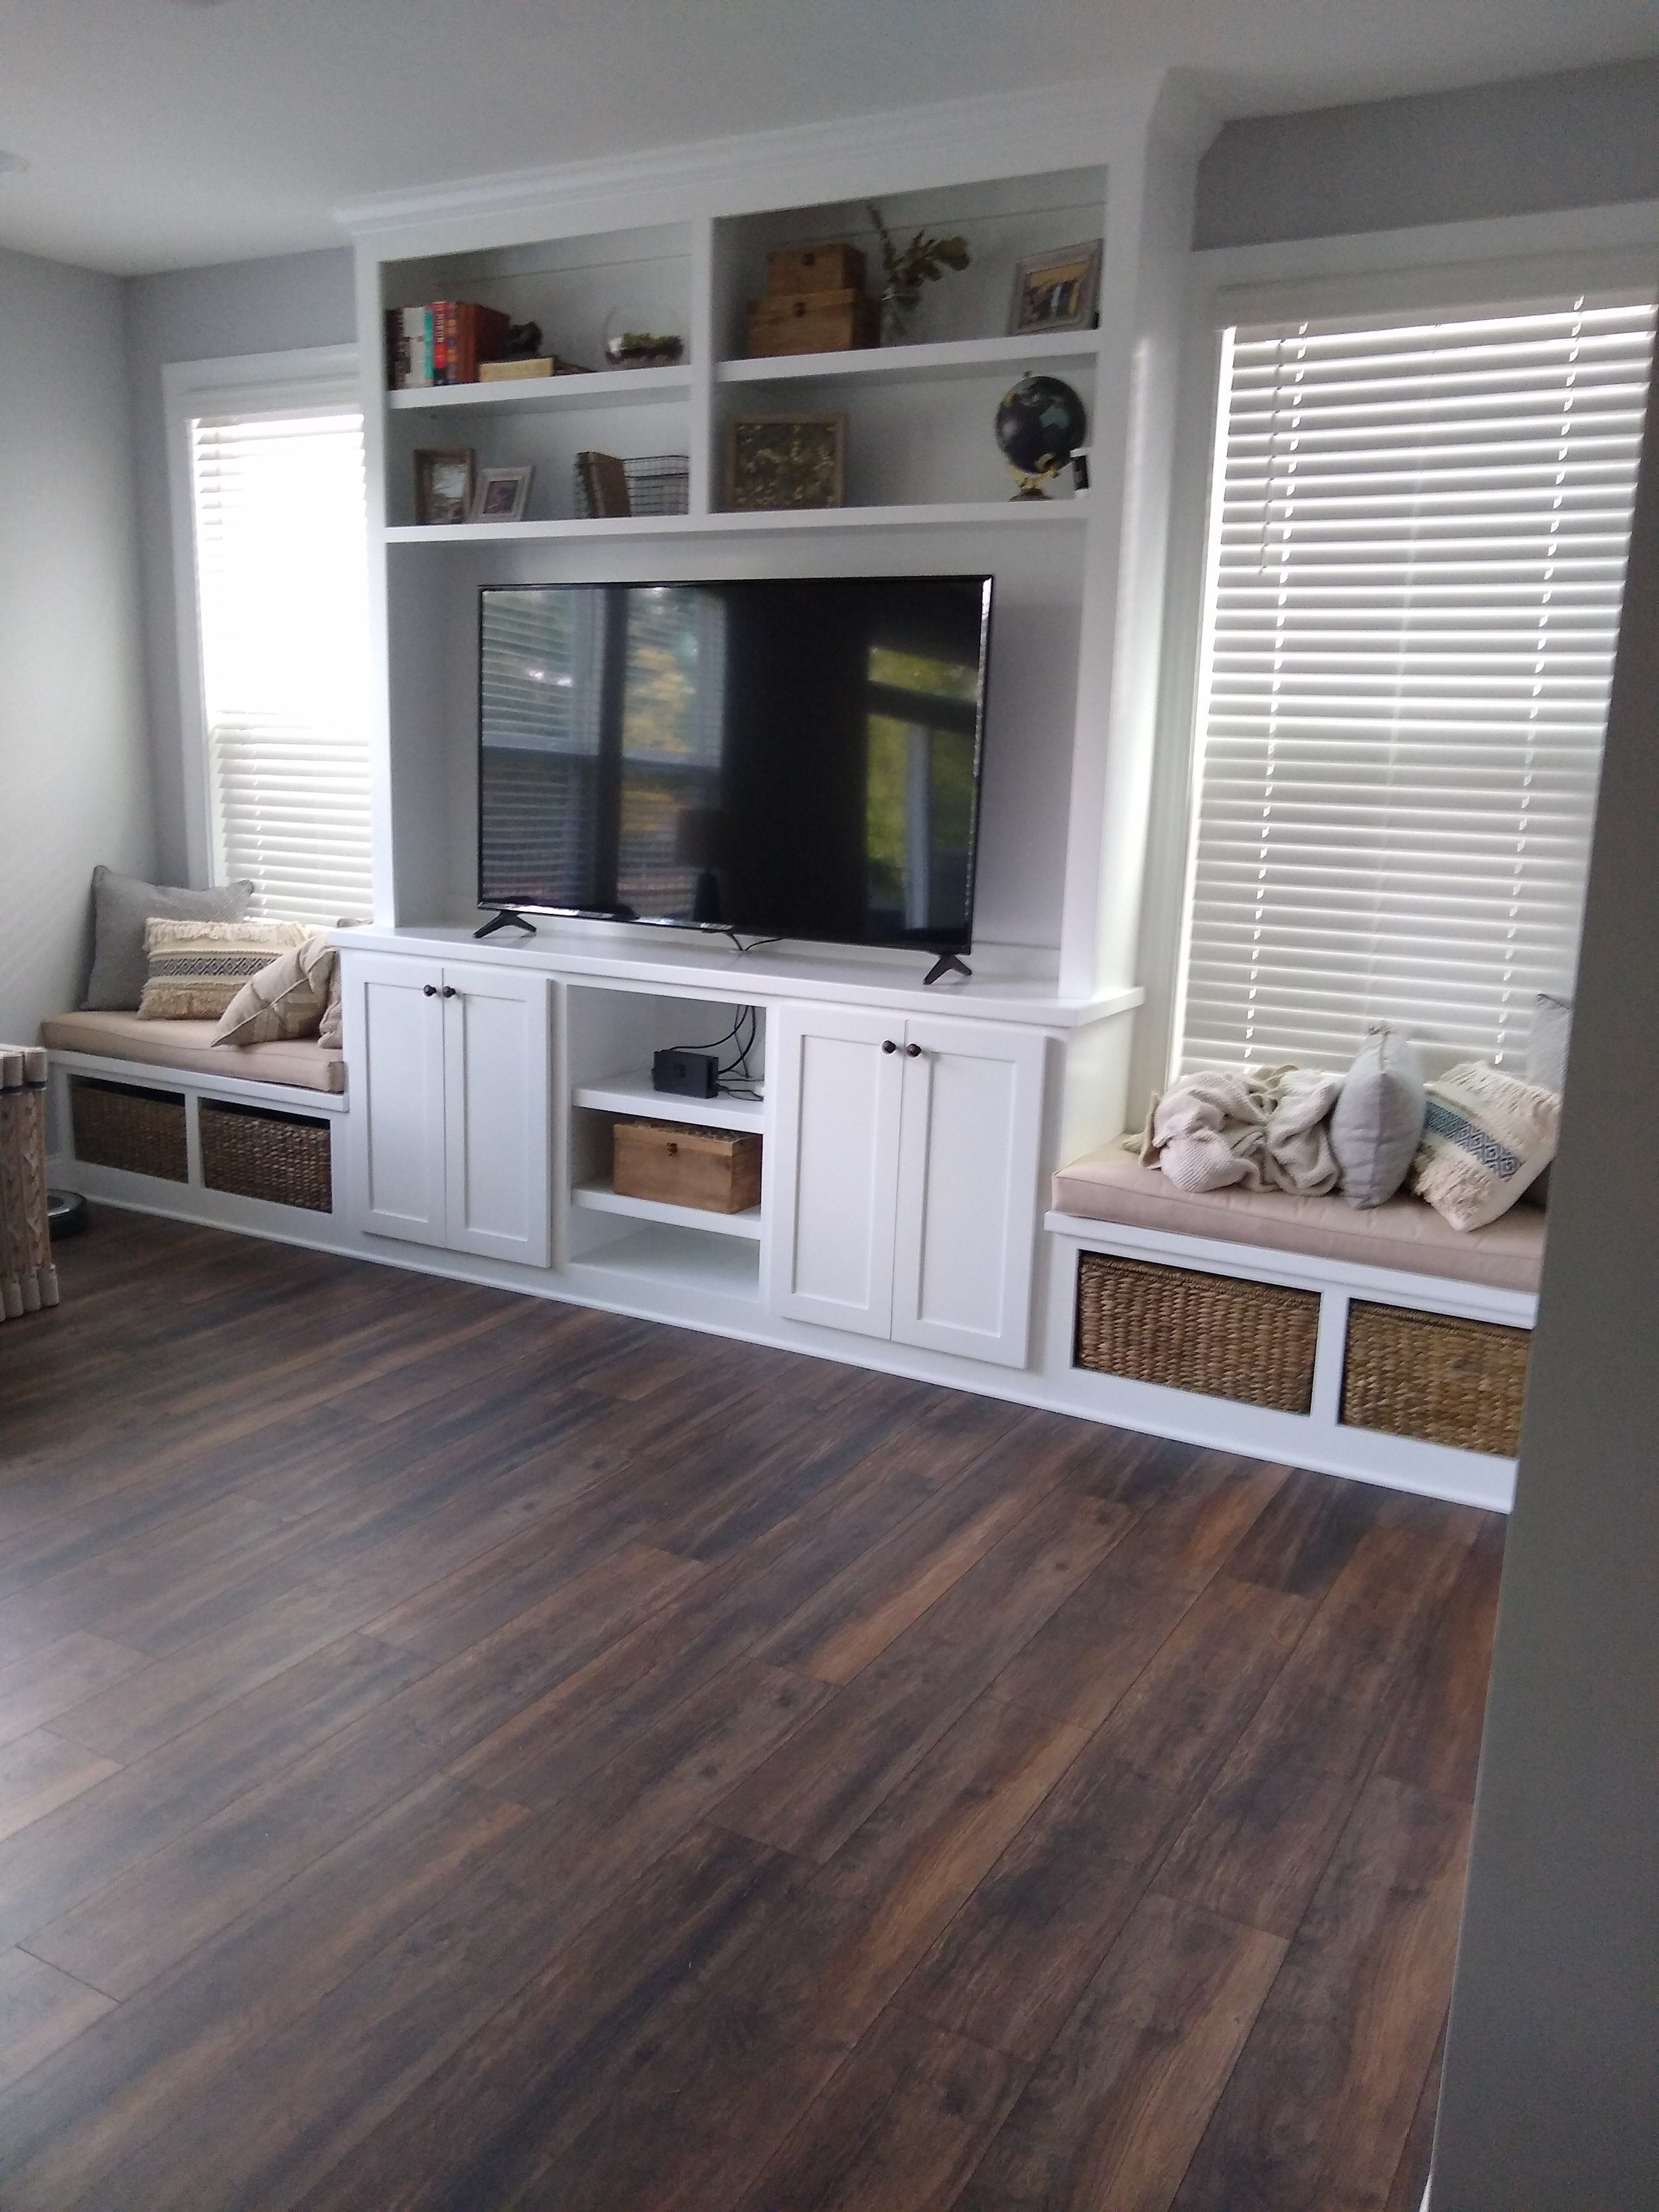 Living Room Built-In with TV Opening, Shaker Doors, Window Seats with Open Cubbies, Adjustable Shelves, and Crown